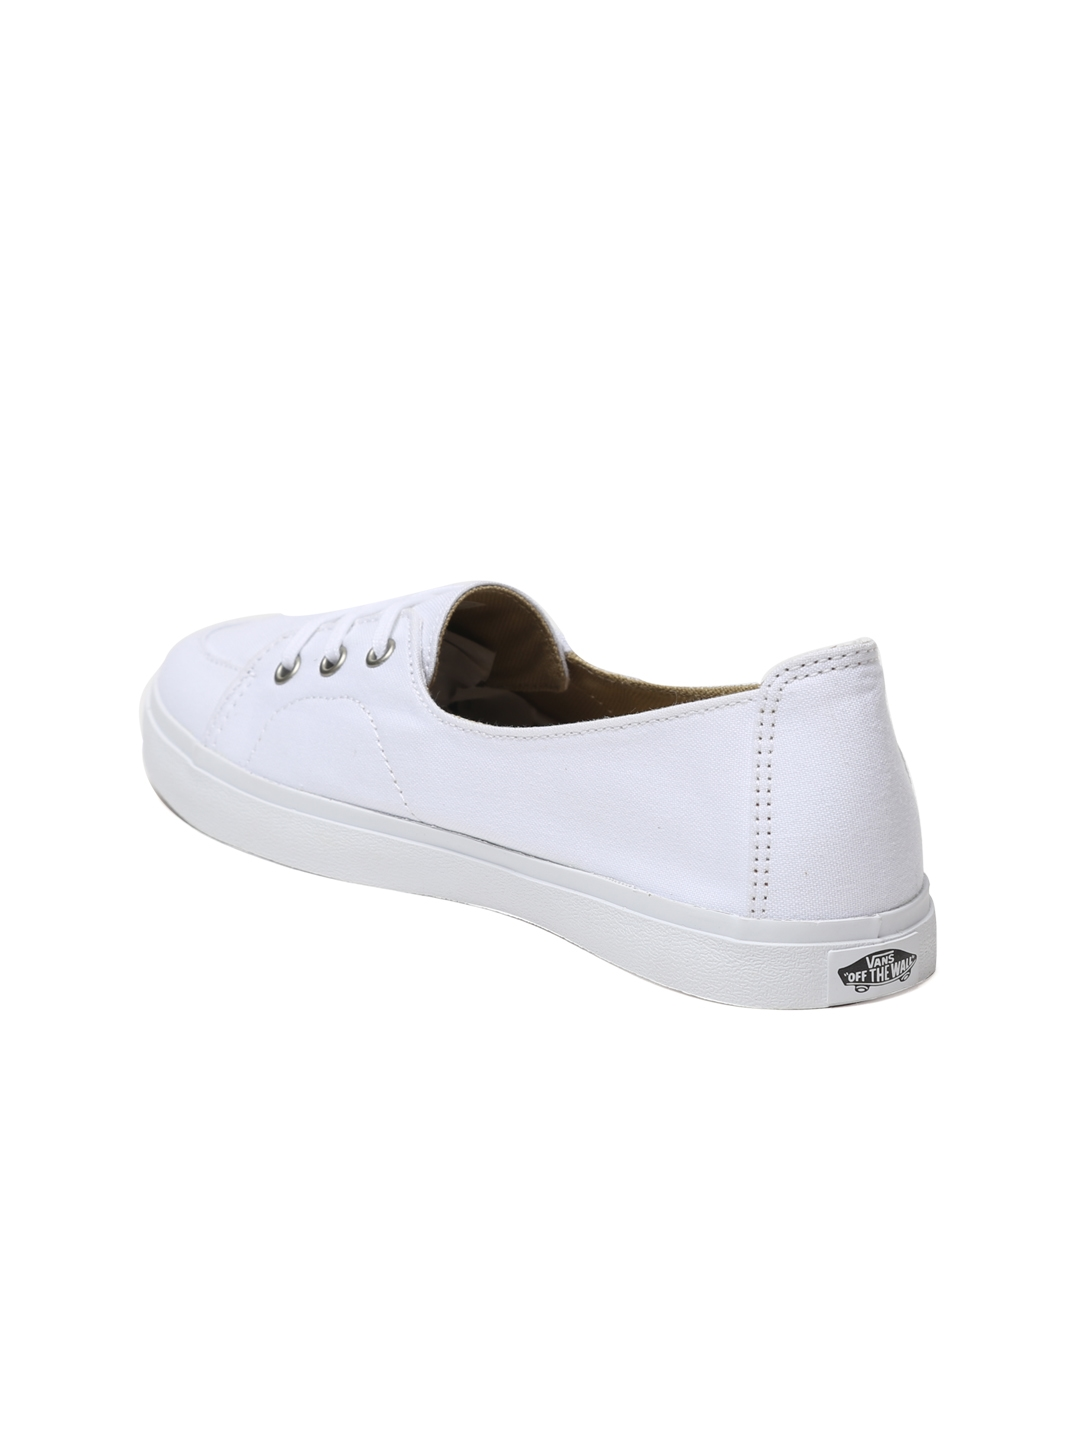 adf371d378 Buy Vans Women White Palisades SF Sneakers - Casual Shoes for Women ...